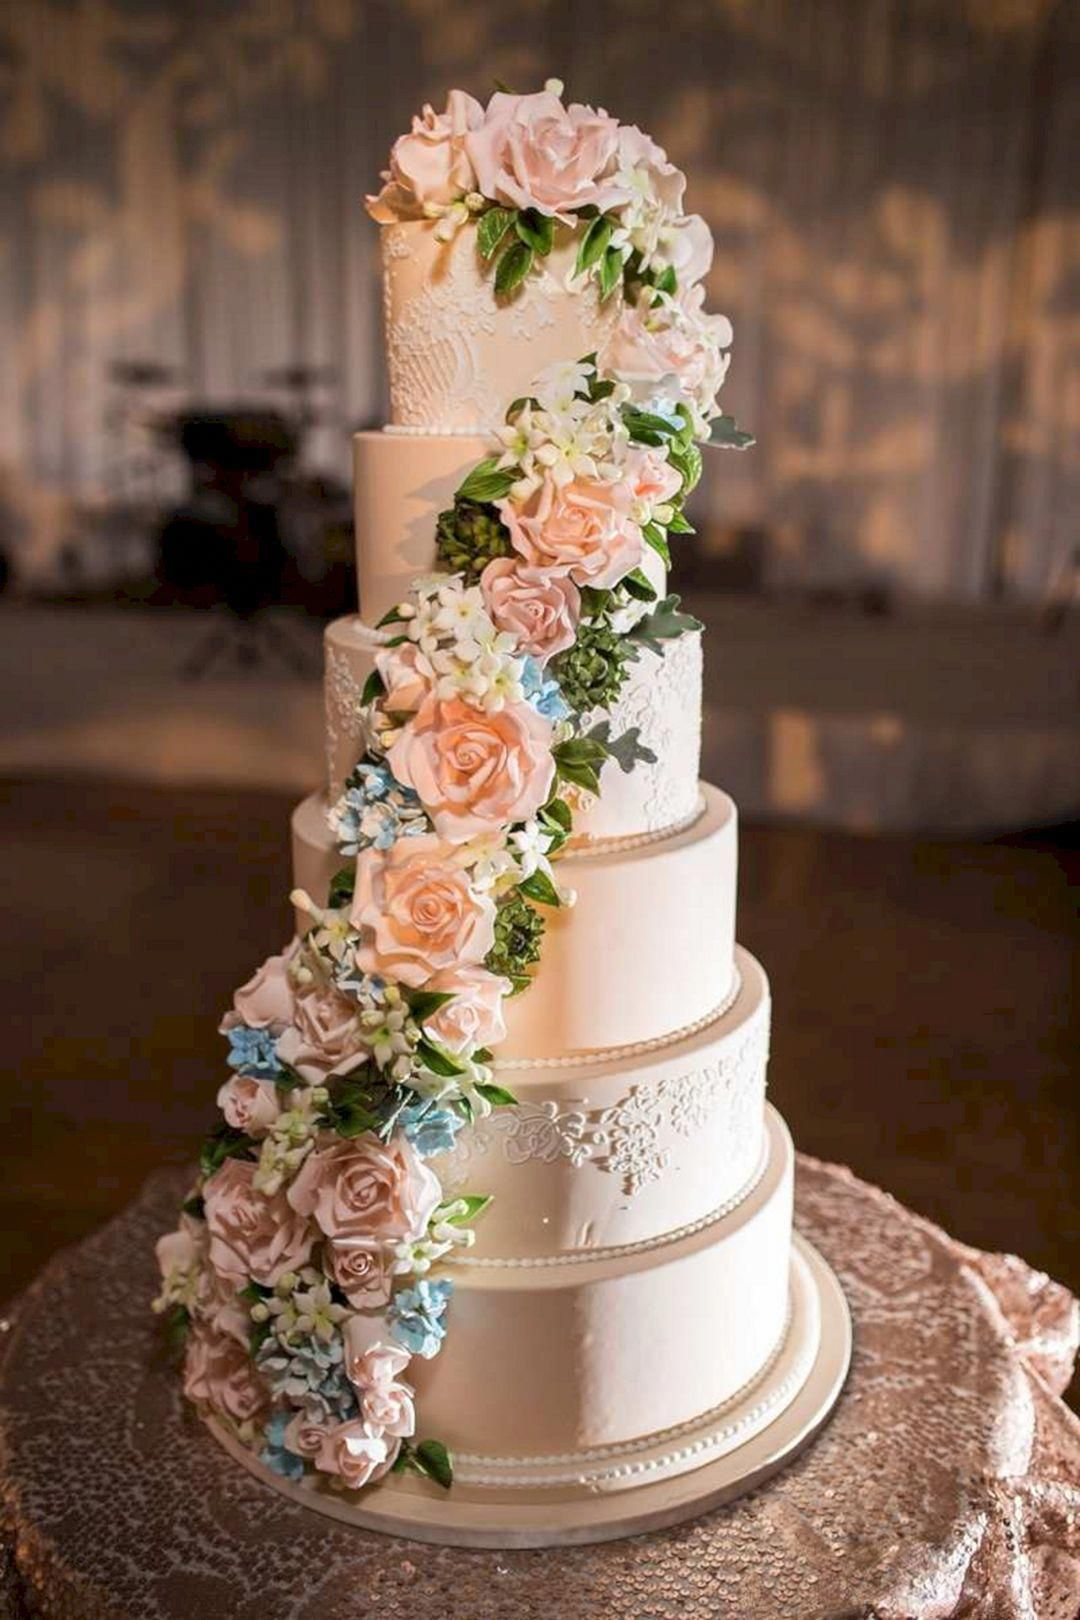 Typically, wedding cakes are is the traditional cake being